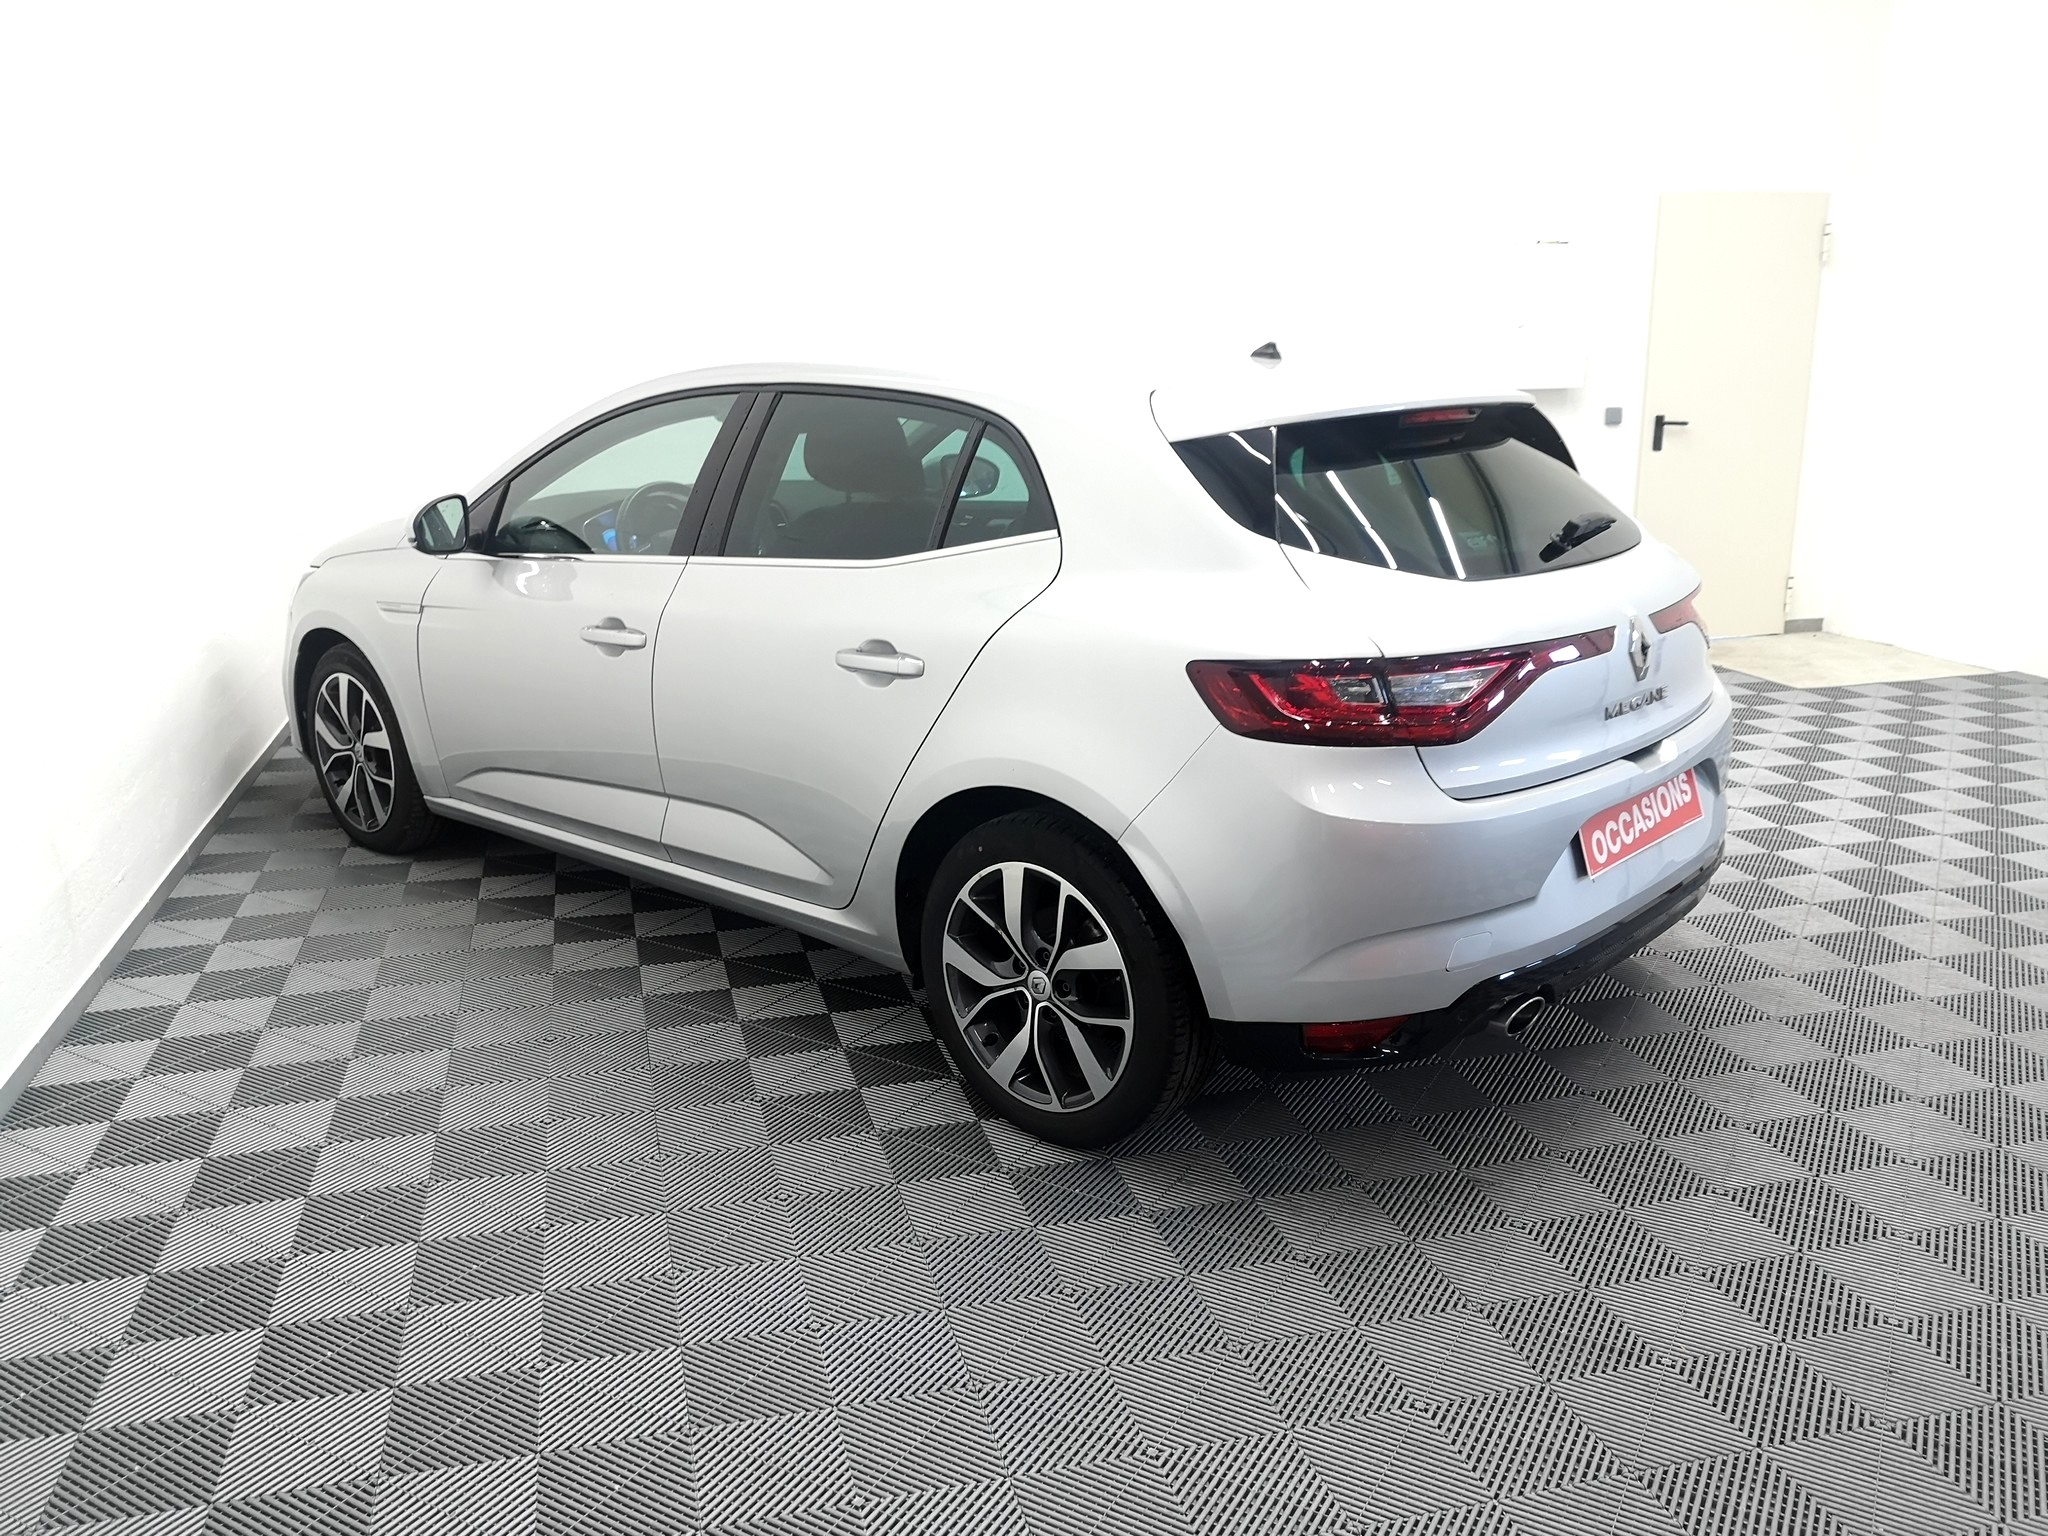 RENAULT MEGANE IV BERLINE 2016 à 14900 € - Photo n°3